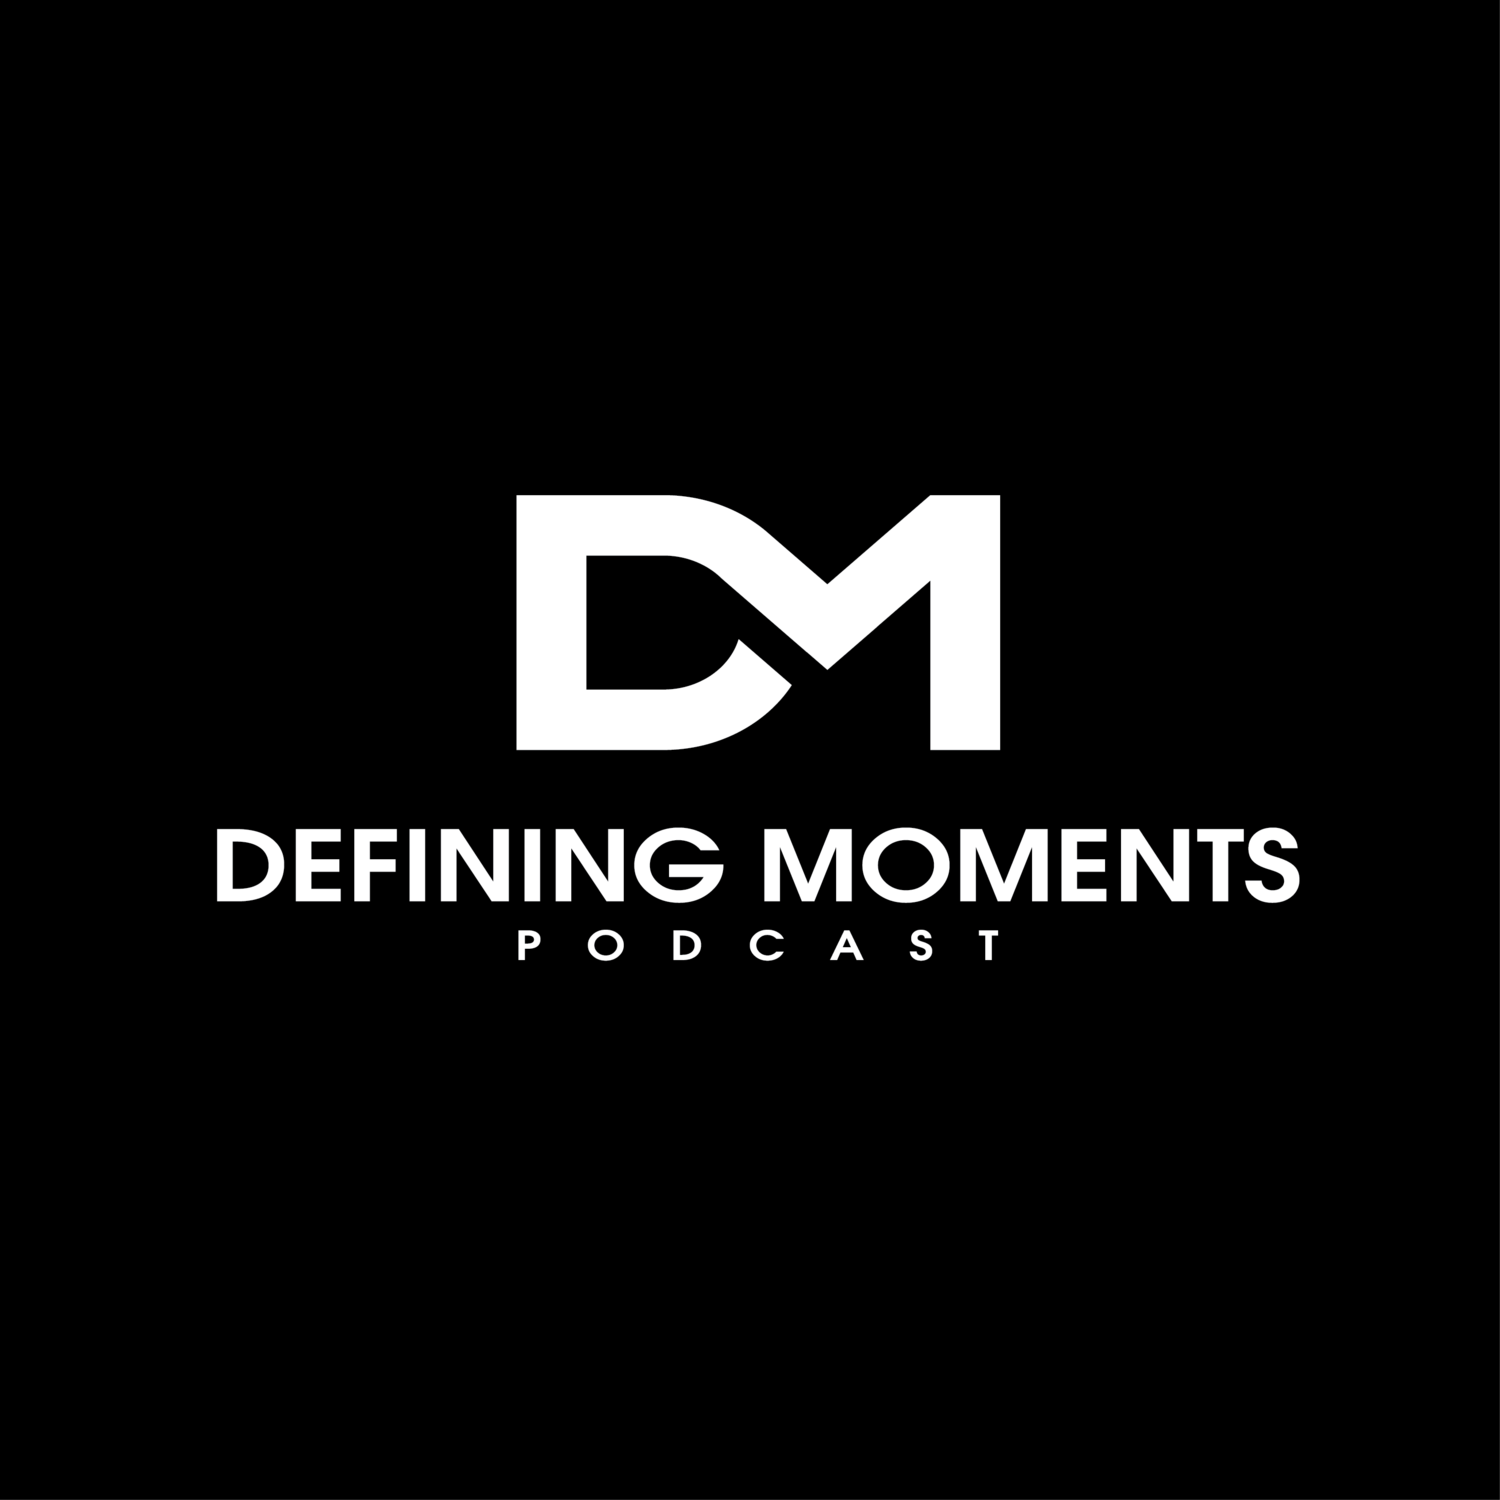 Defining Moments Podcast